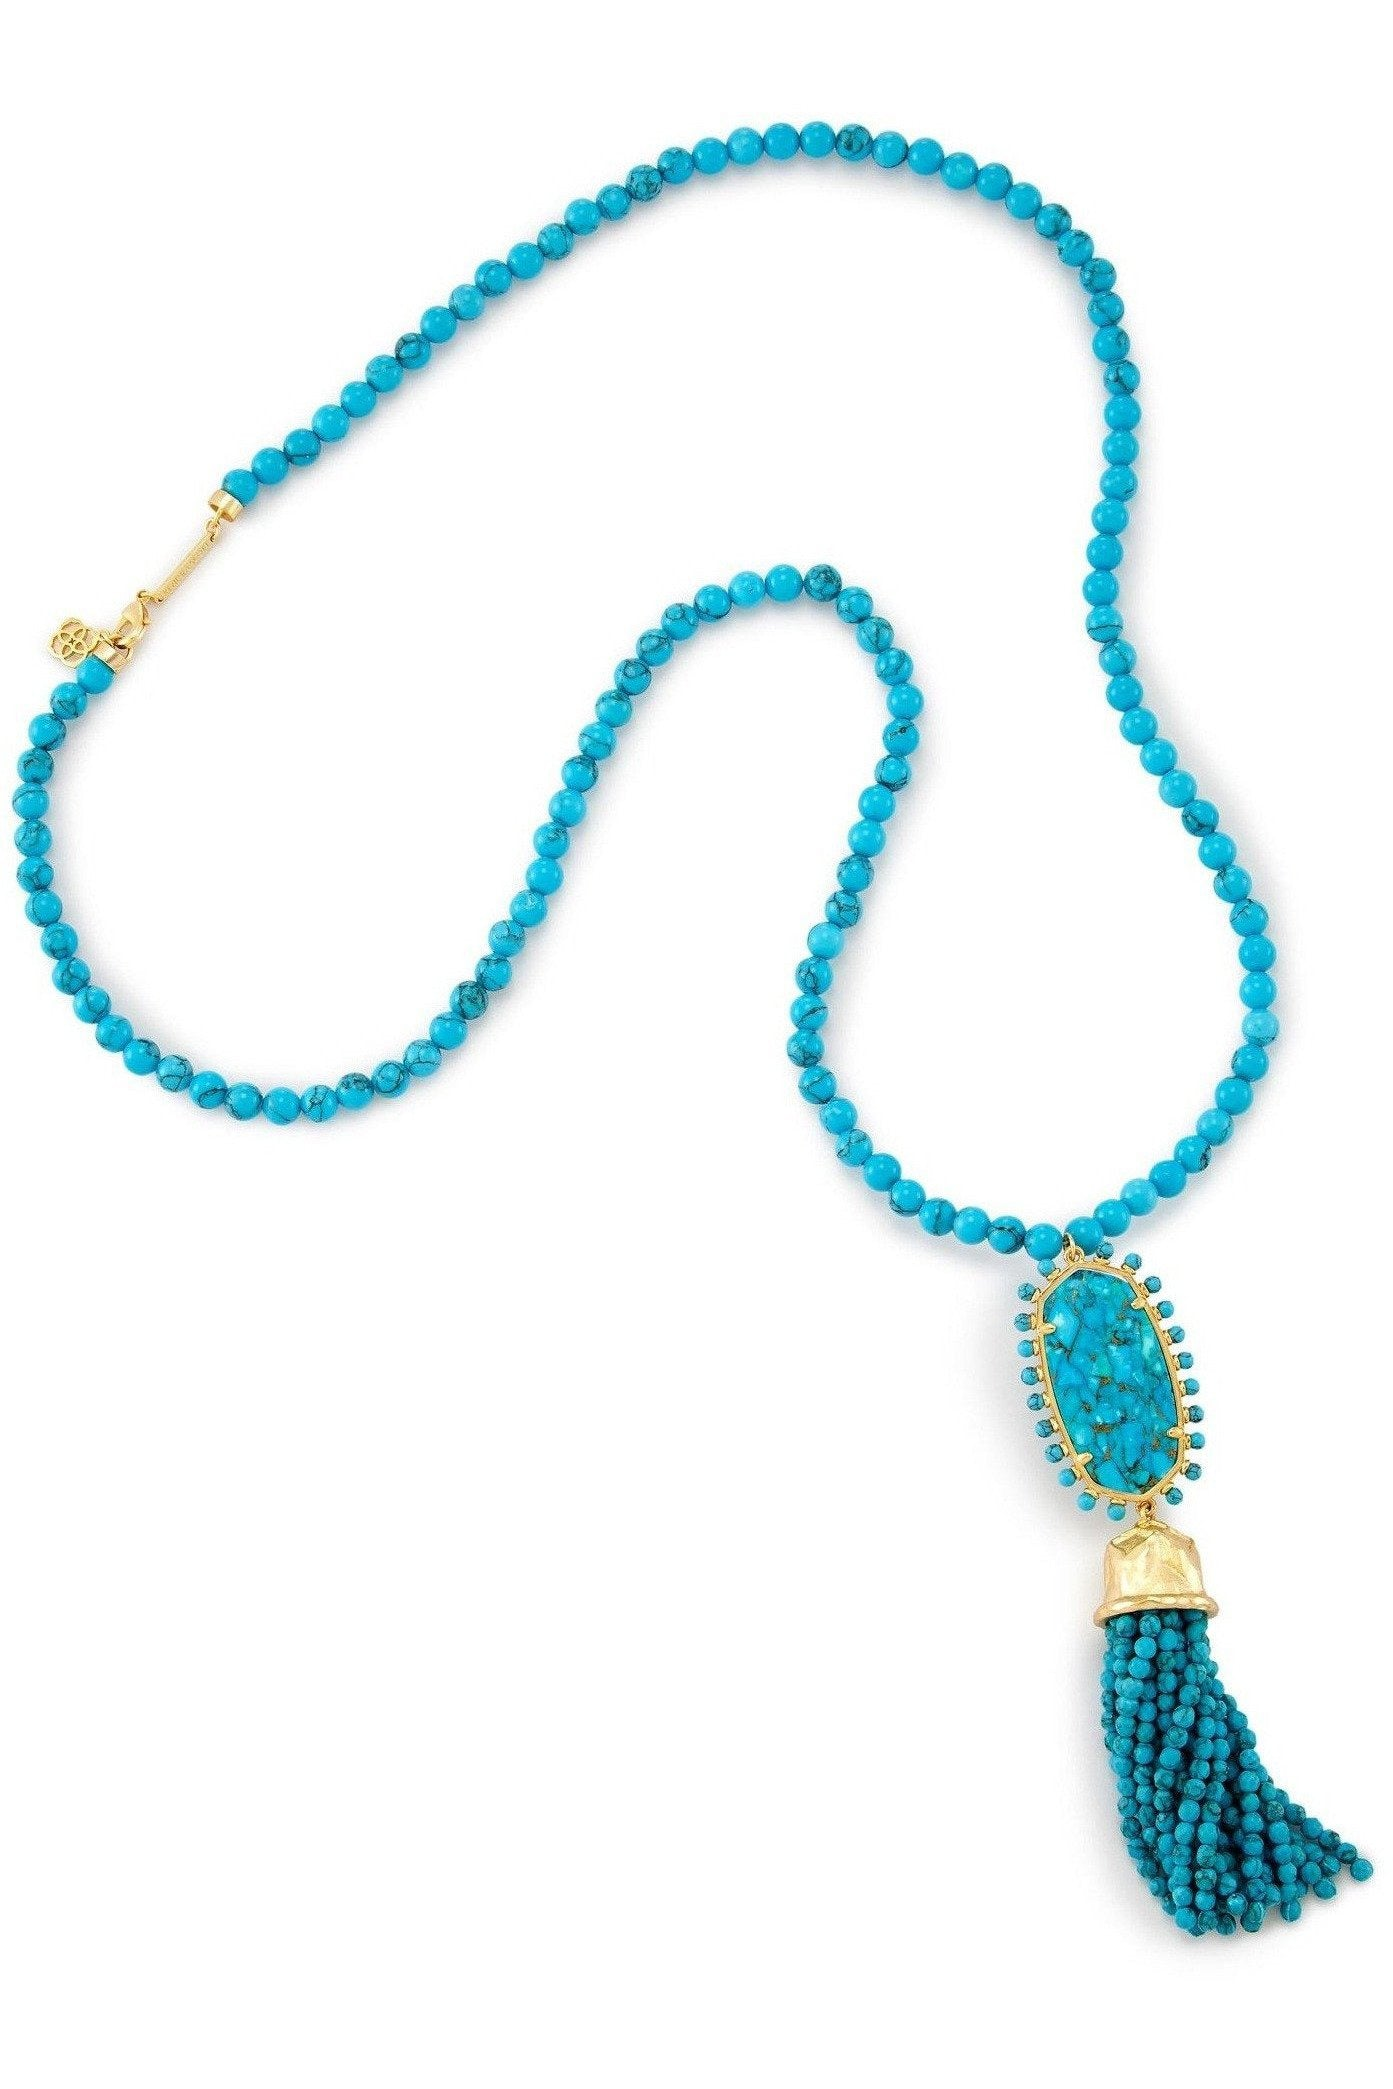 Kendra Scott: Tatiana Long Pendant Necklace In Bronze Veined Turquoise